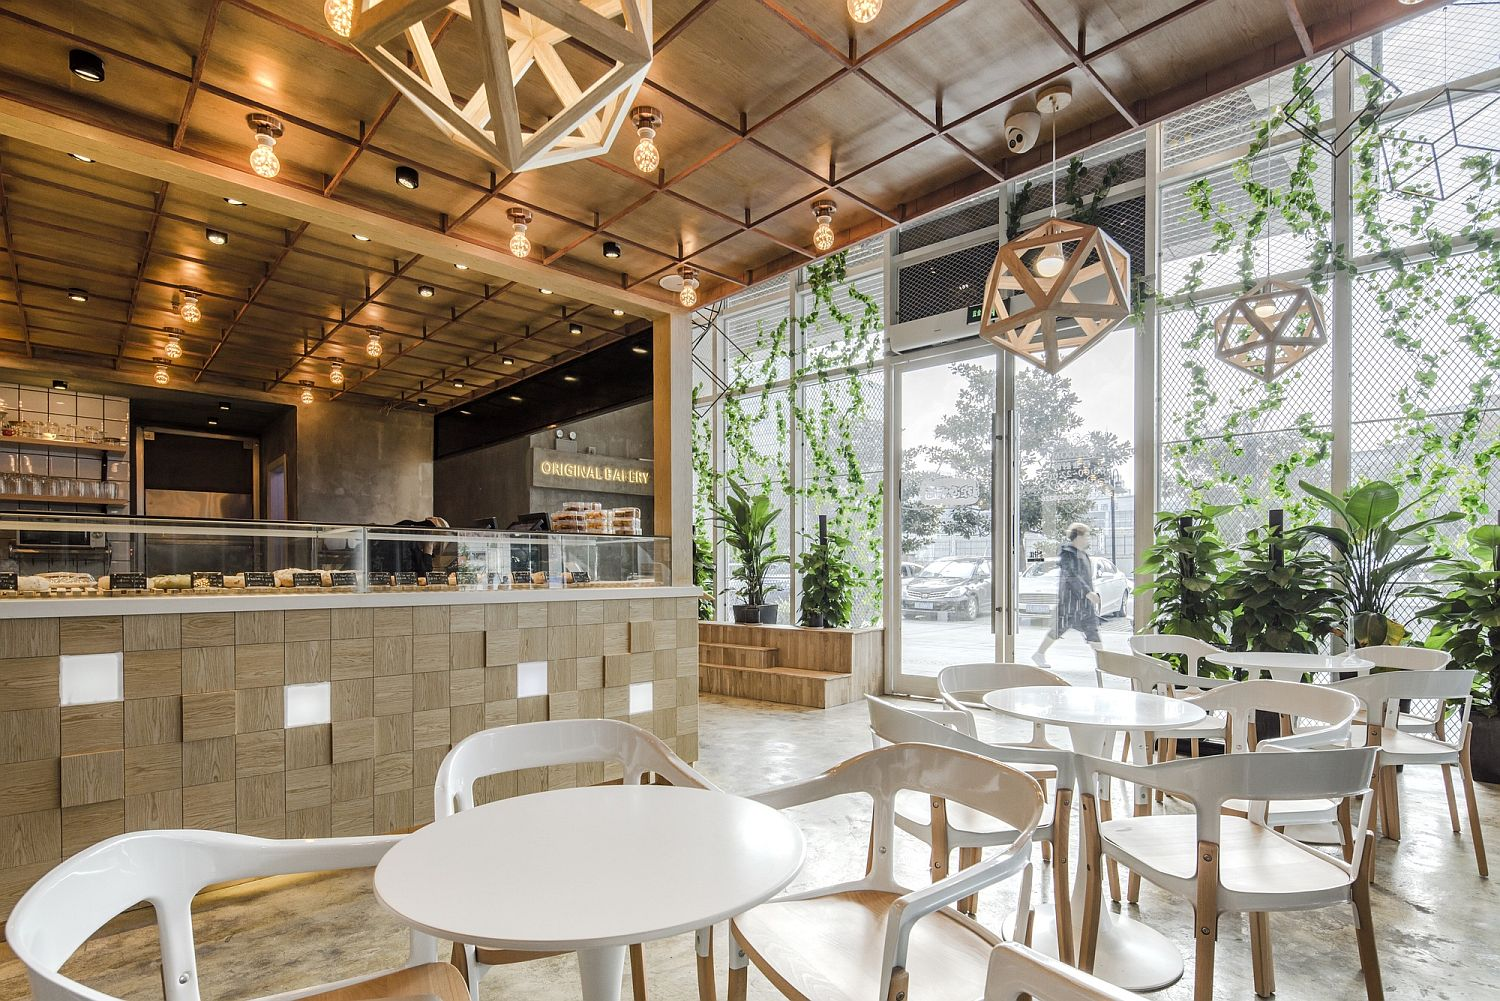 Geometric pendant lights and gorgeous greenery give the restaurant a unique look